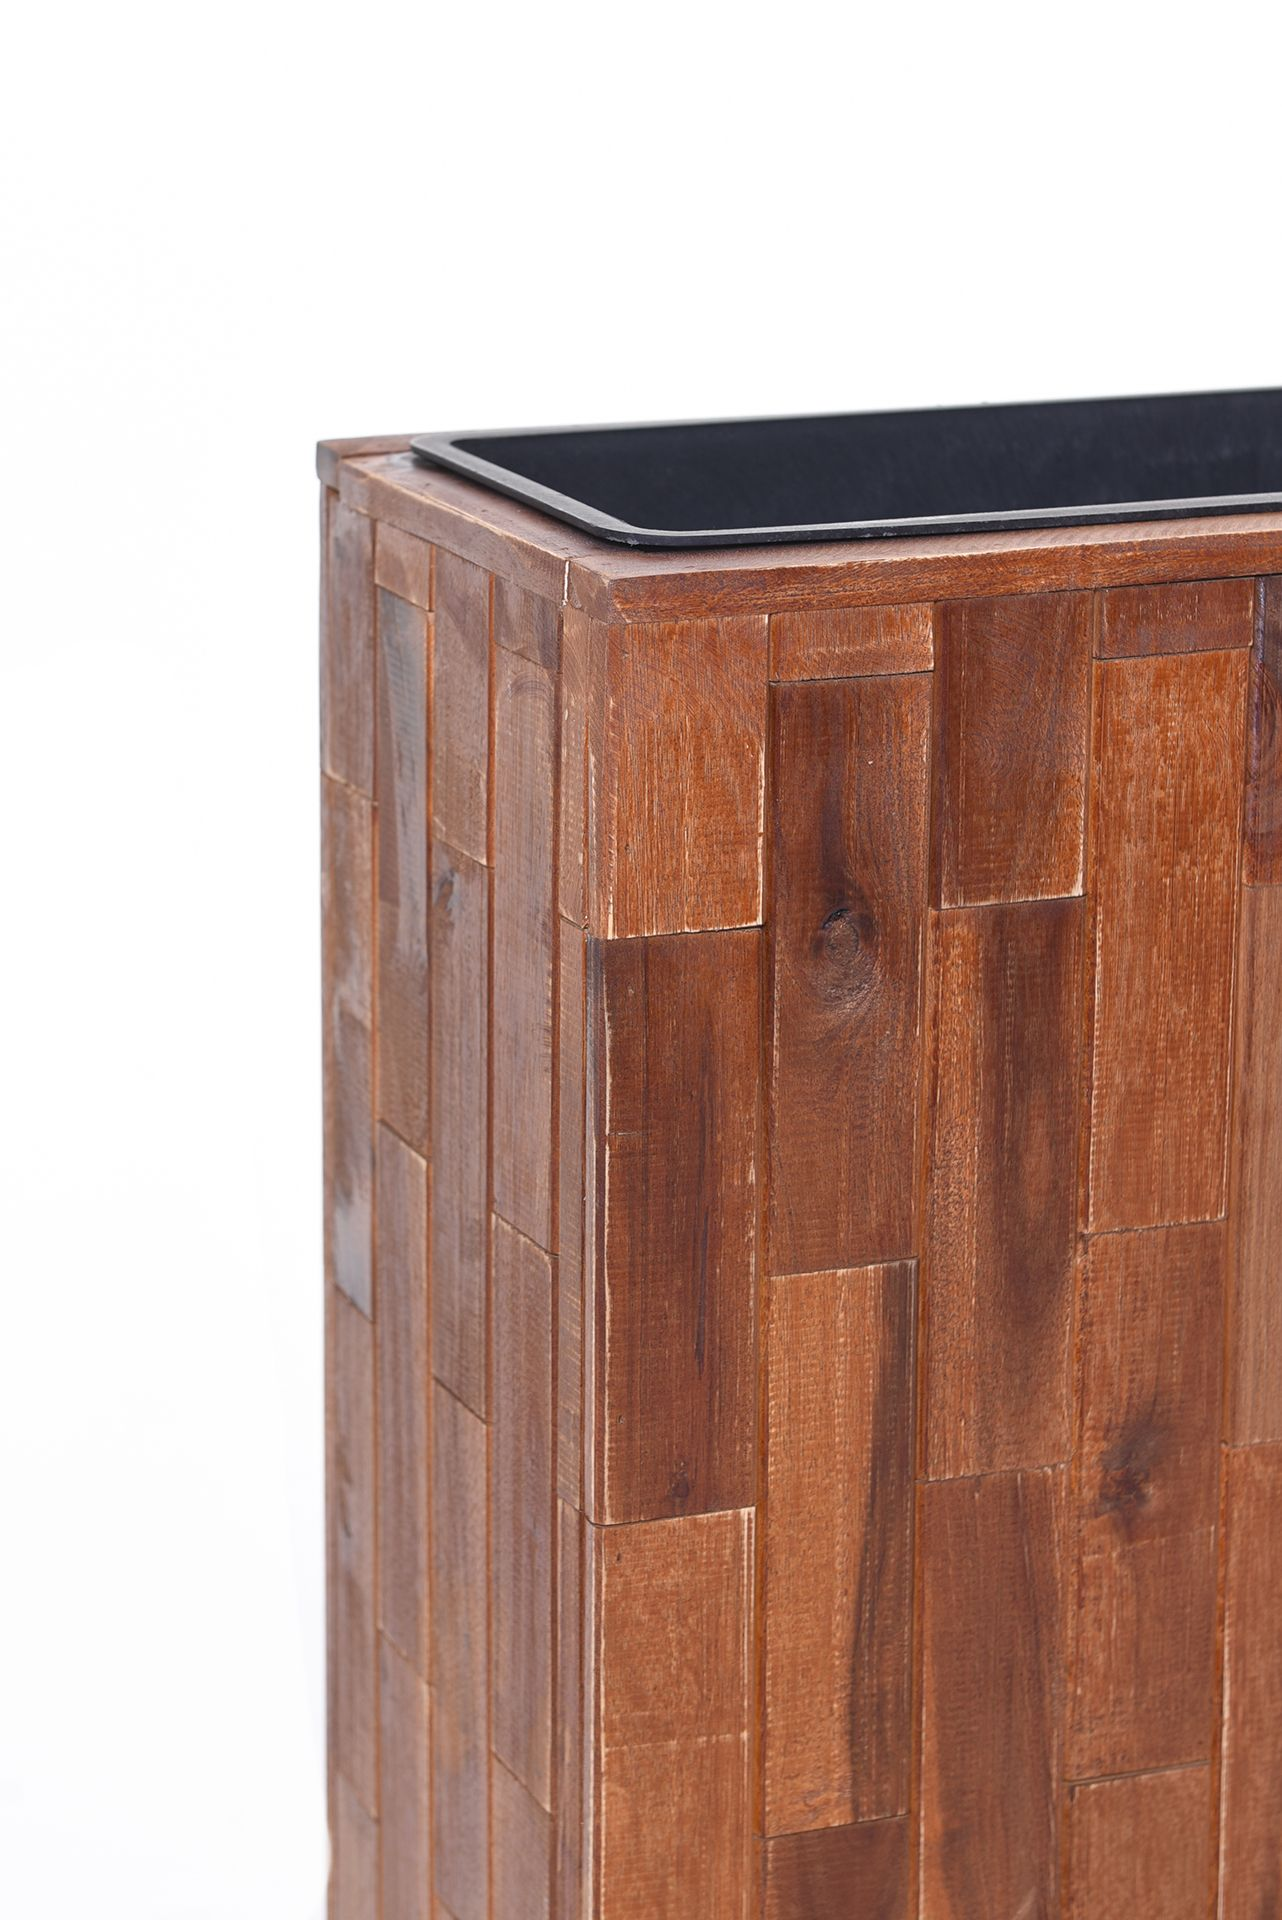 pflanzk bel raumteiler elemento aus holz akazie 75x60x23 cm braun ebay. Black Bedroom Furniture Sets. Home Design Ideas